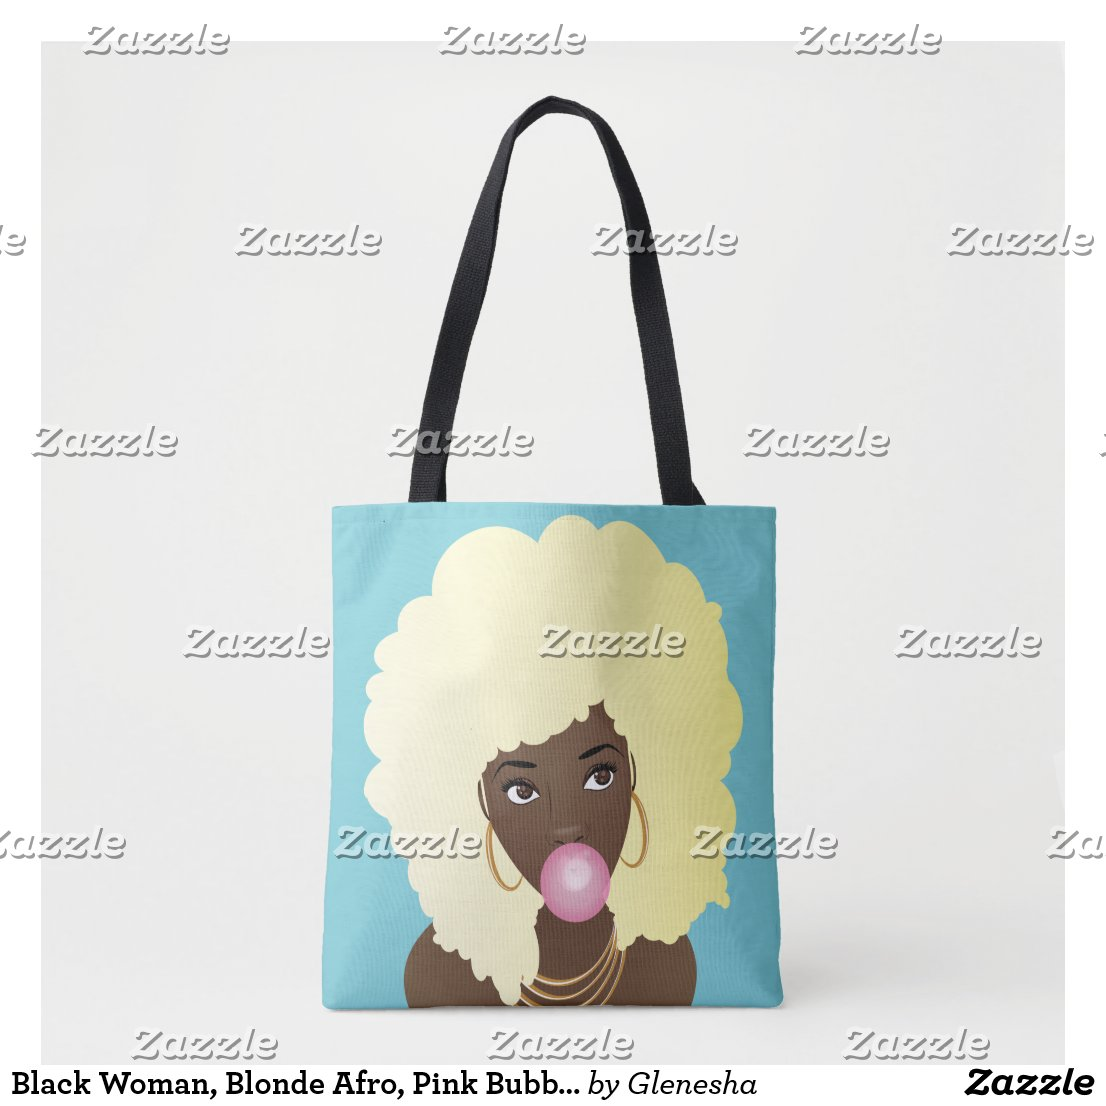 Blonde Afro Popping Pink Bubble Gum Tote Bag